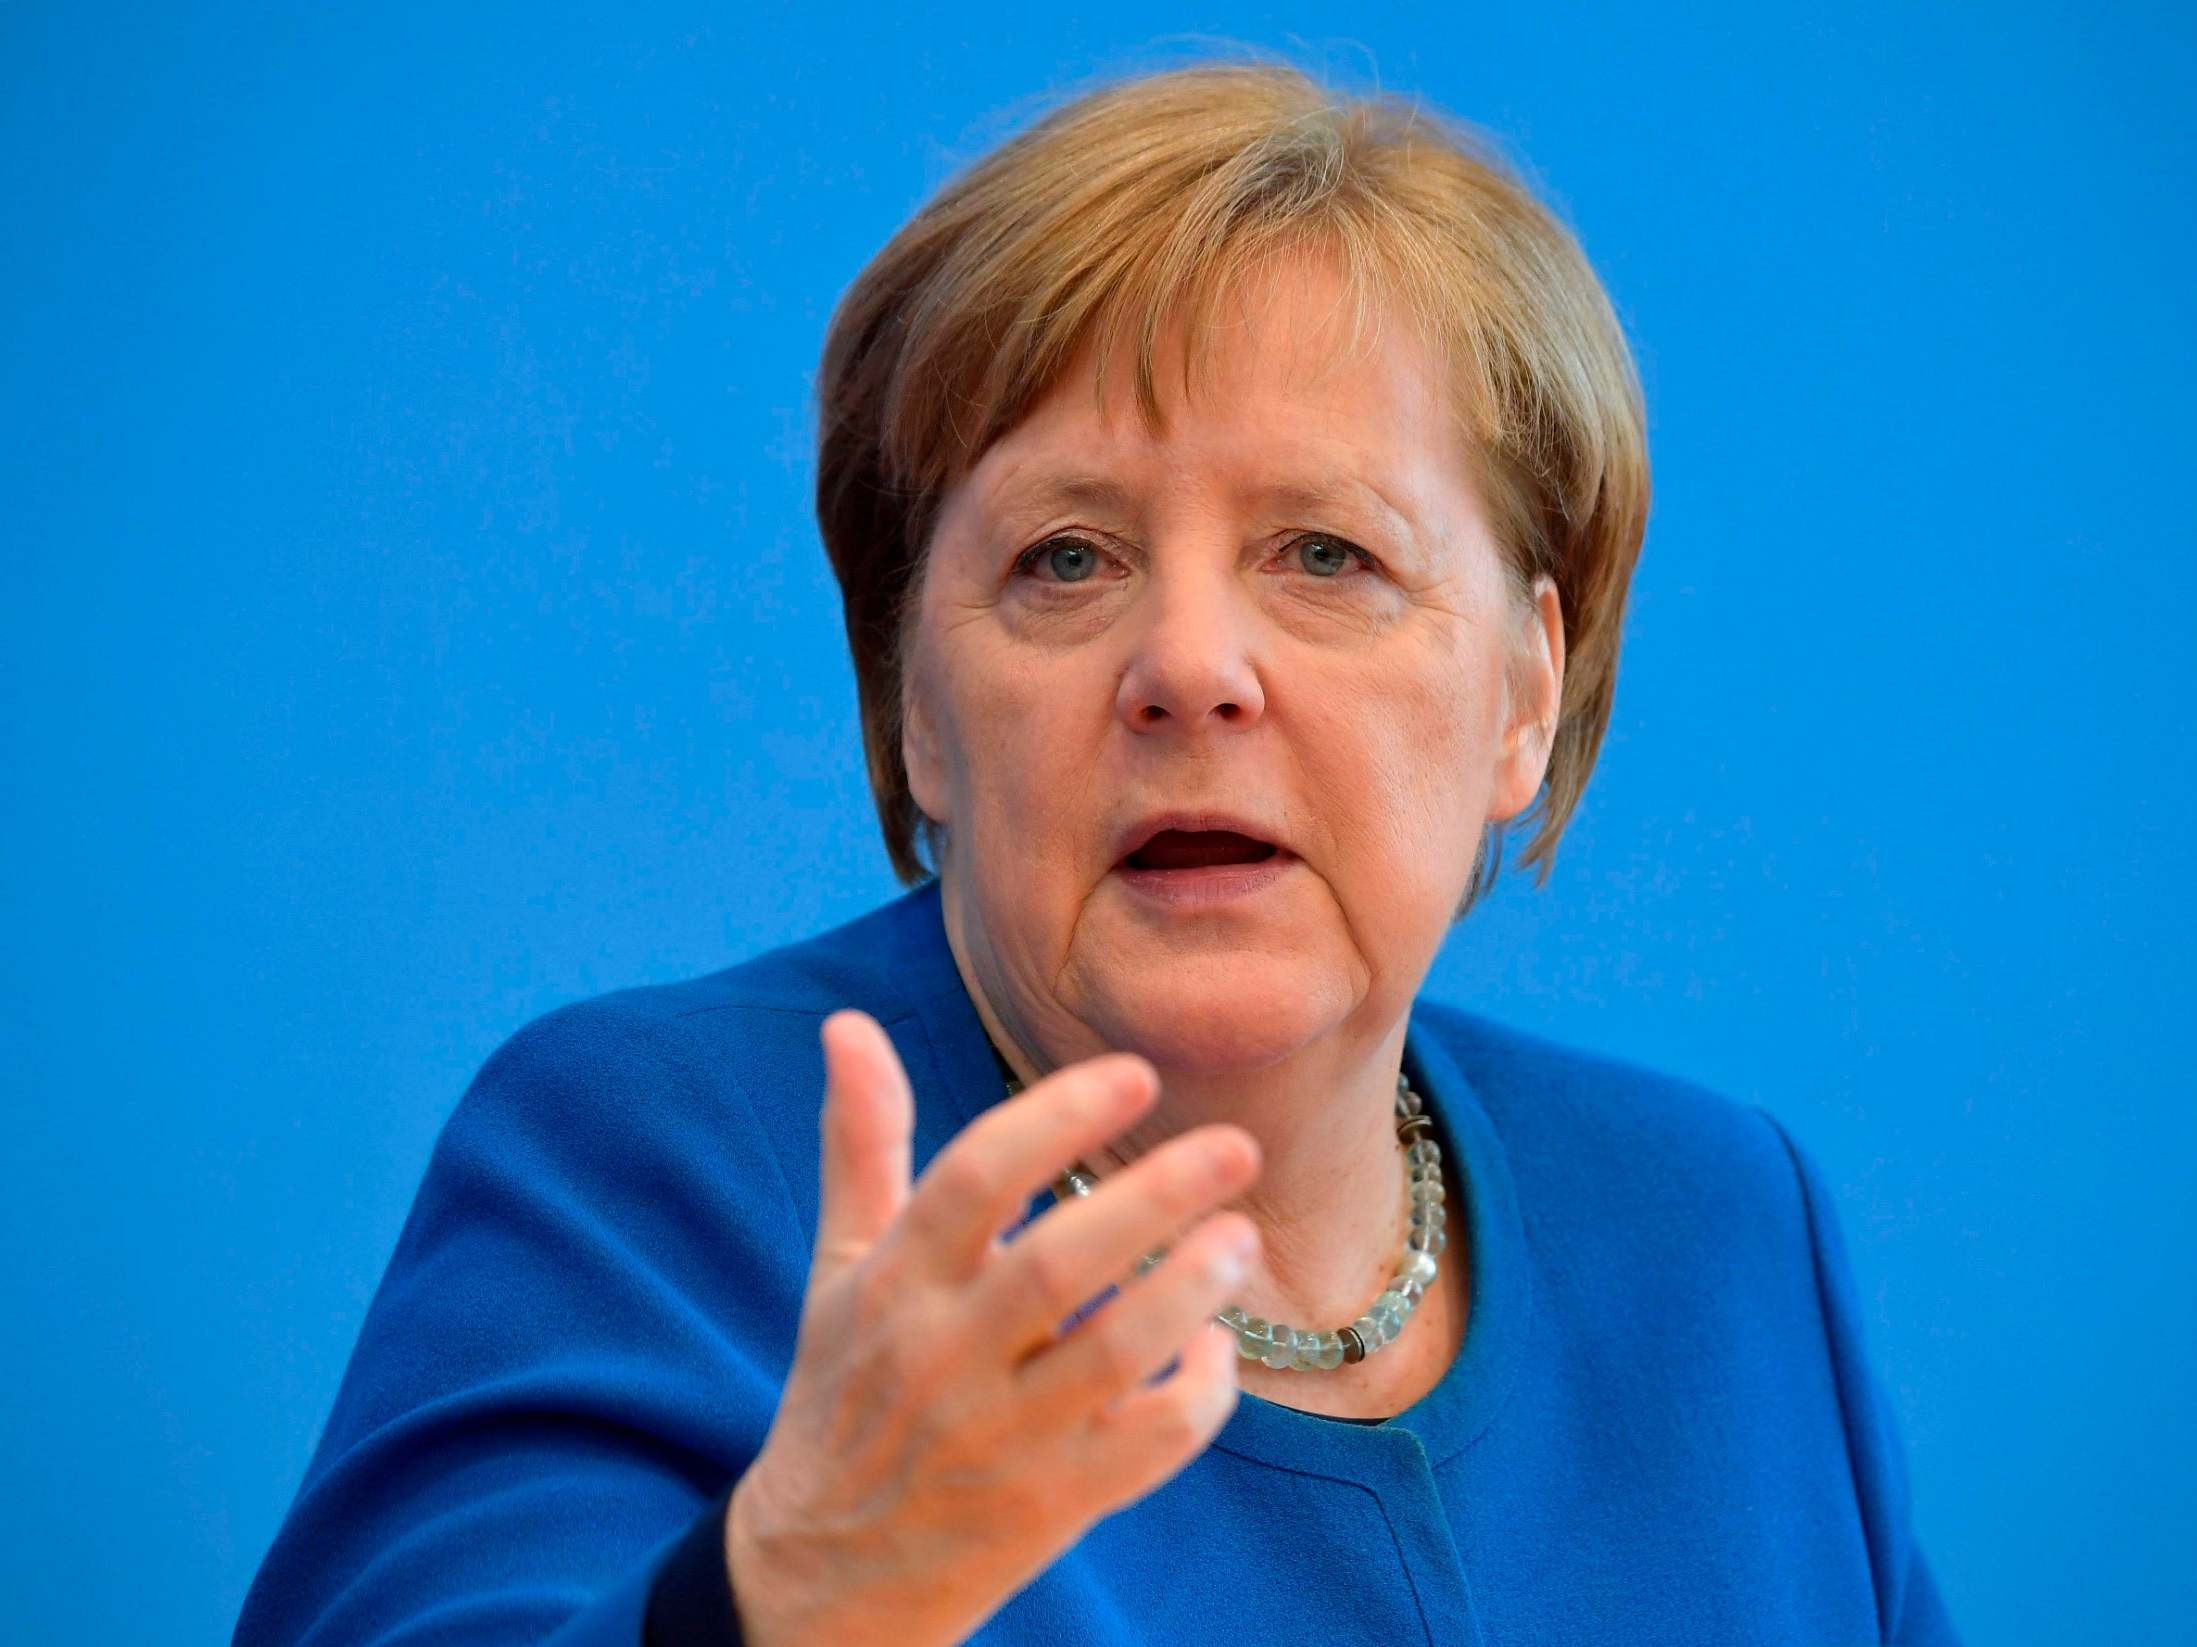 Angela Merkel in self-isolation after her doctor tested positive for coronavirus